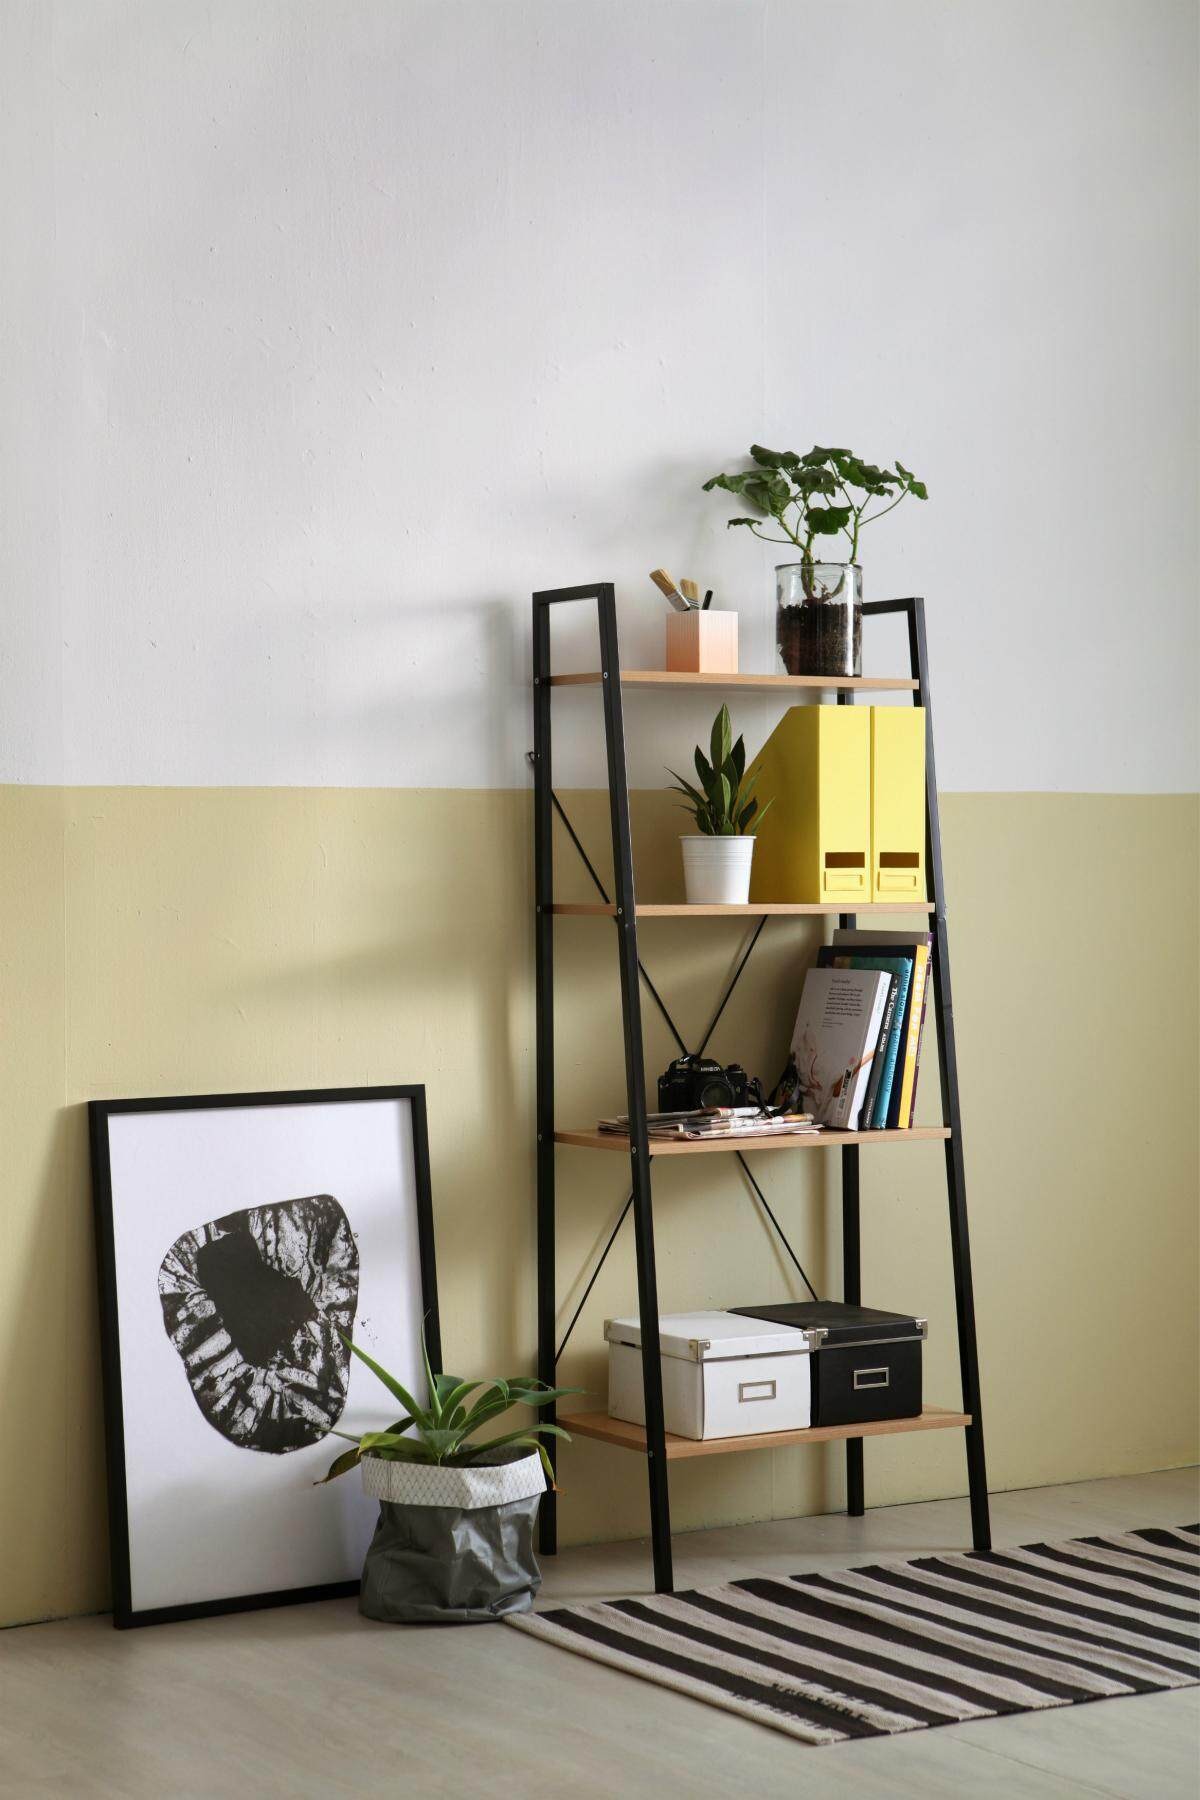 Okura 4 Tier Multipurpose Shelf Home Living Office By Okura.